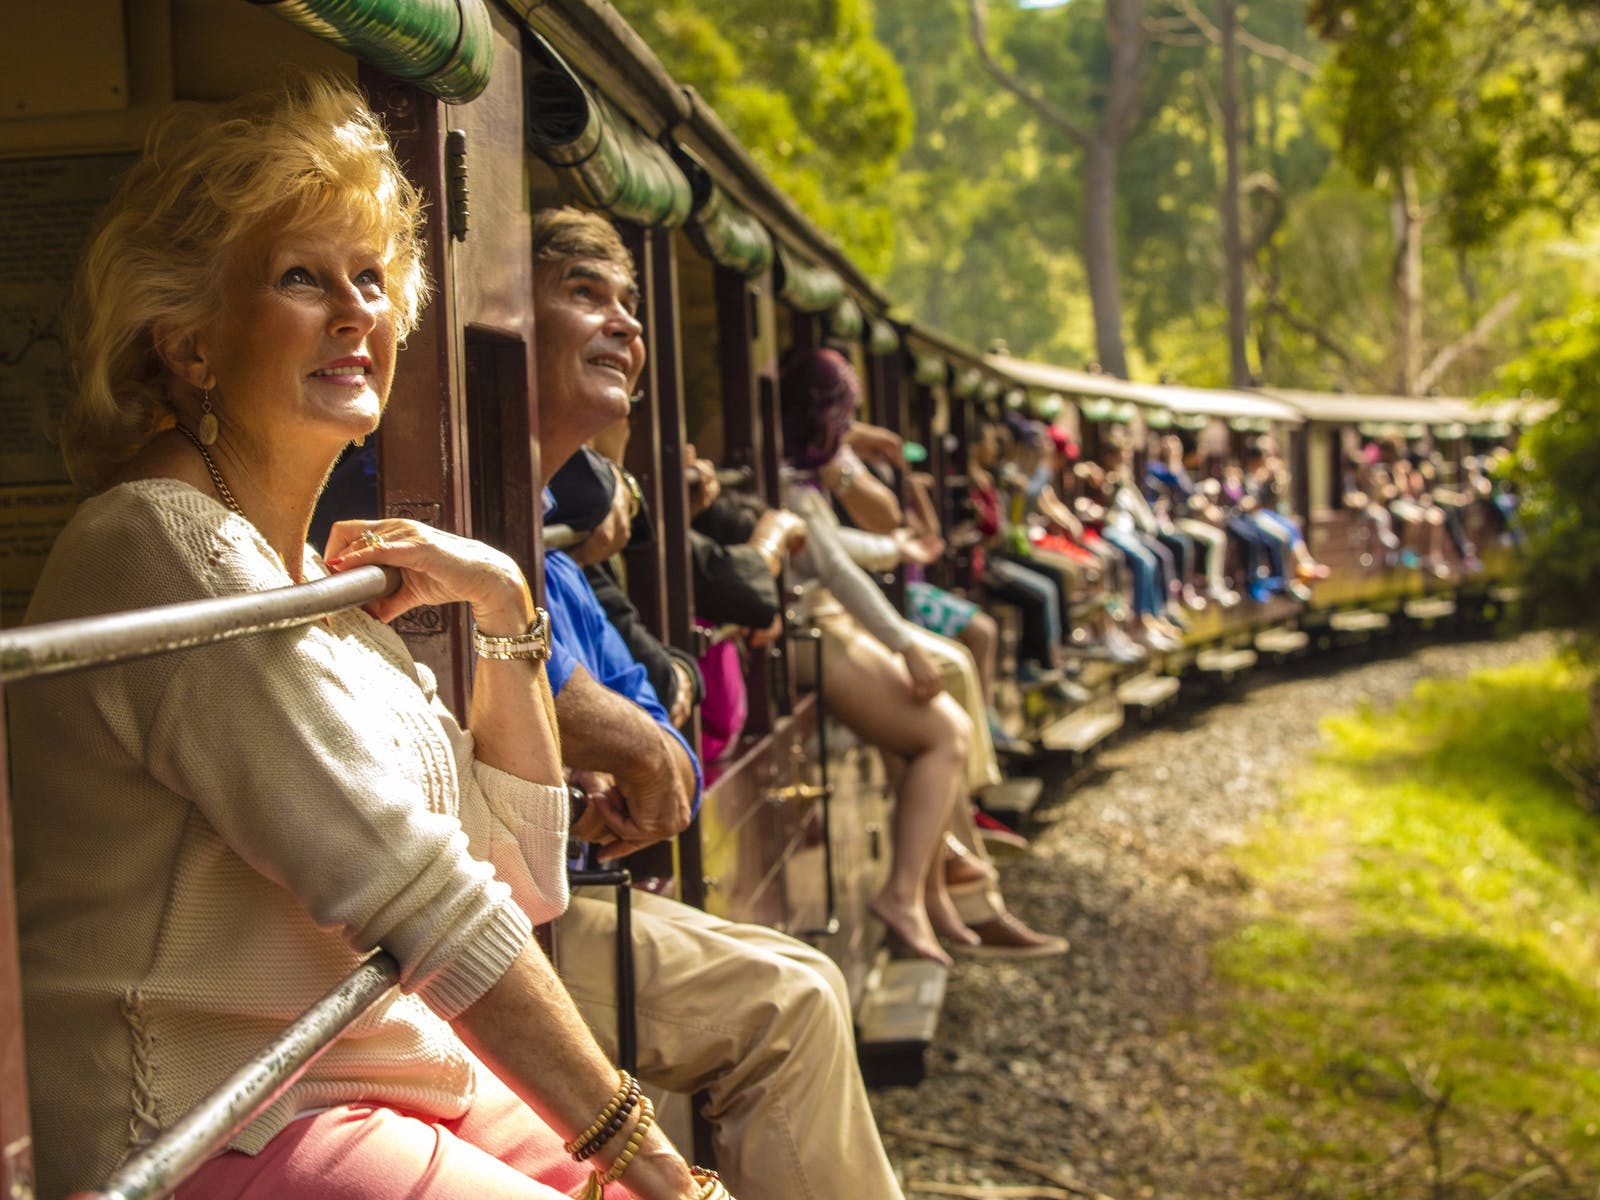 AAT Kings guests on Puffing Billy Steam Train